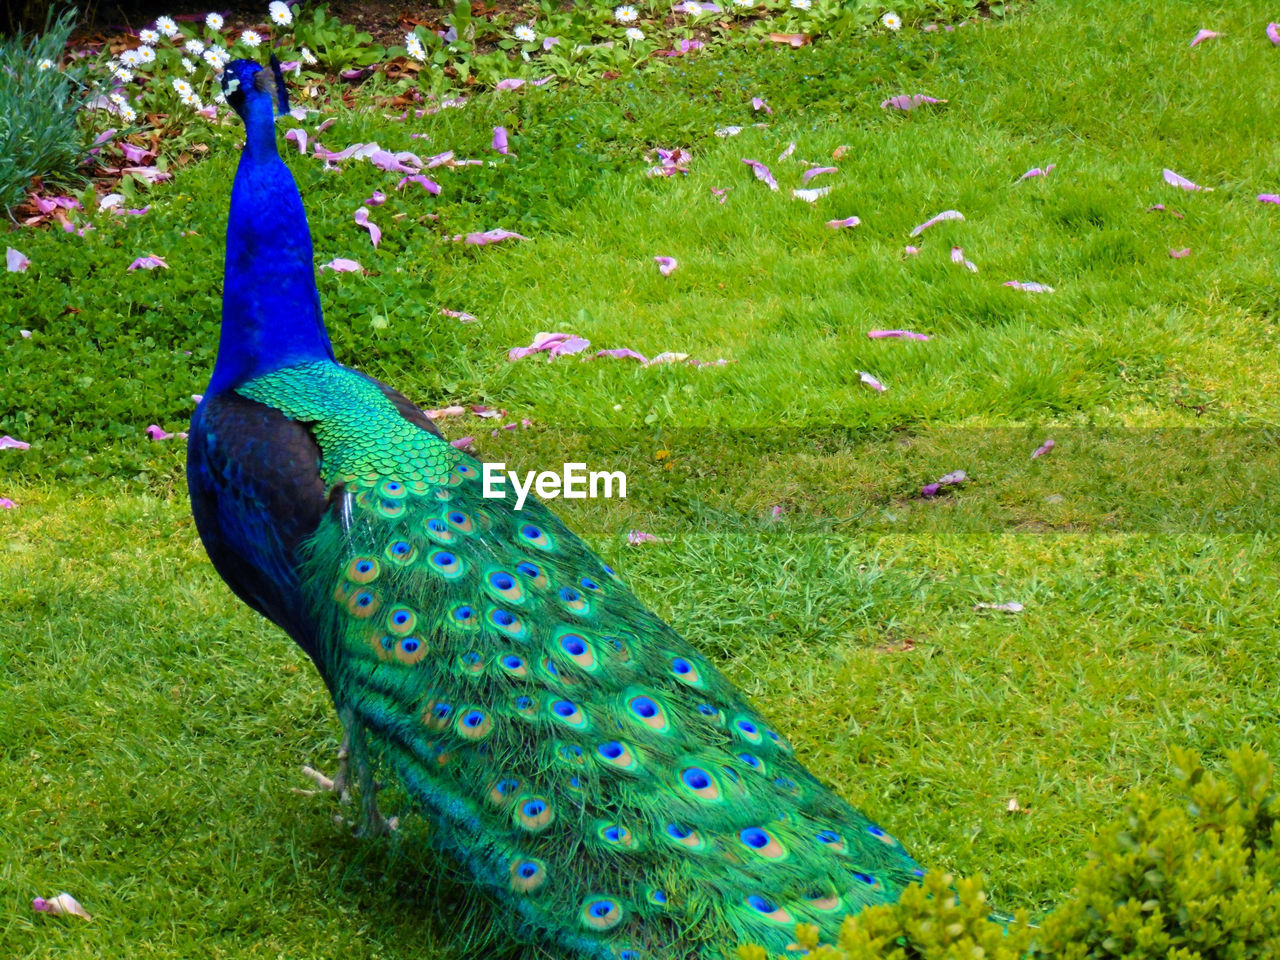 peacock, bird, animal themes, grass, animal, green color, one animal, plant, vertebrate, animals in the wild, nature, animal wildlife, male animal, beauty in nature, day, field, no people, feather, peacock feather, land, outdoors, fanned out